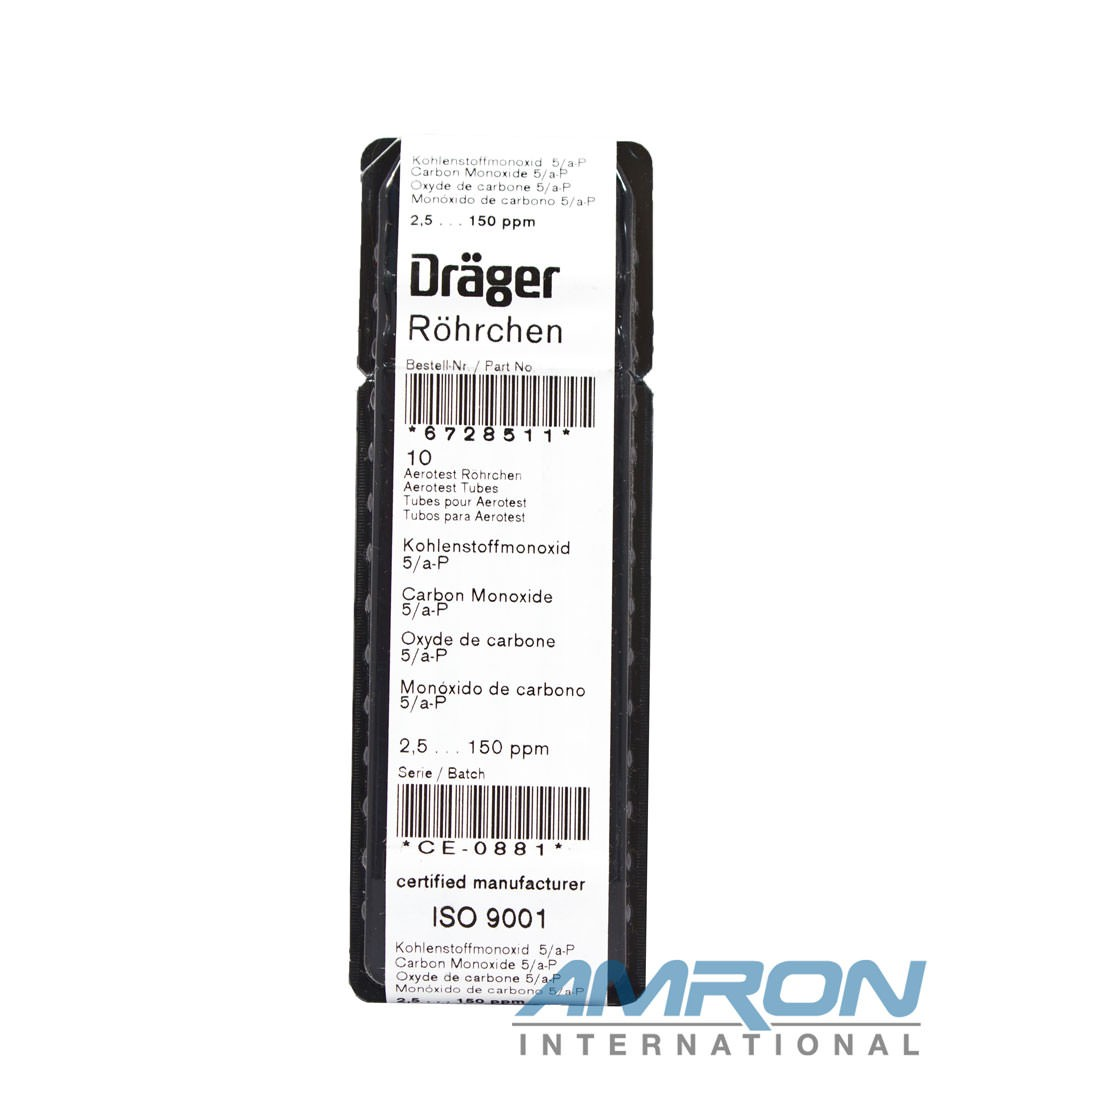 Draeger CO 5/a-P Aerotest Tubes 2.5-150 PPM - Box of 10 6728511